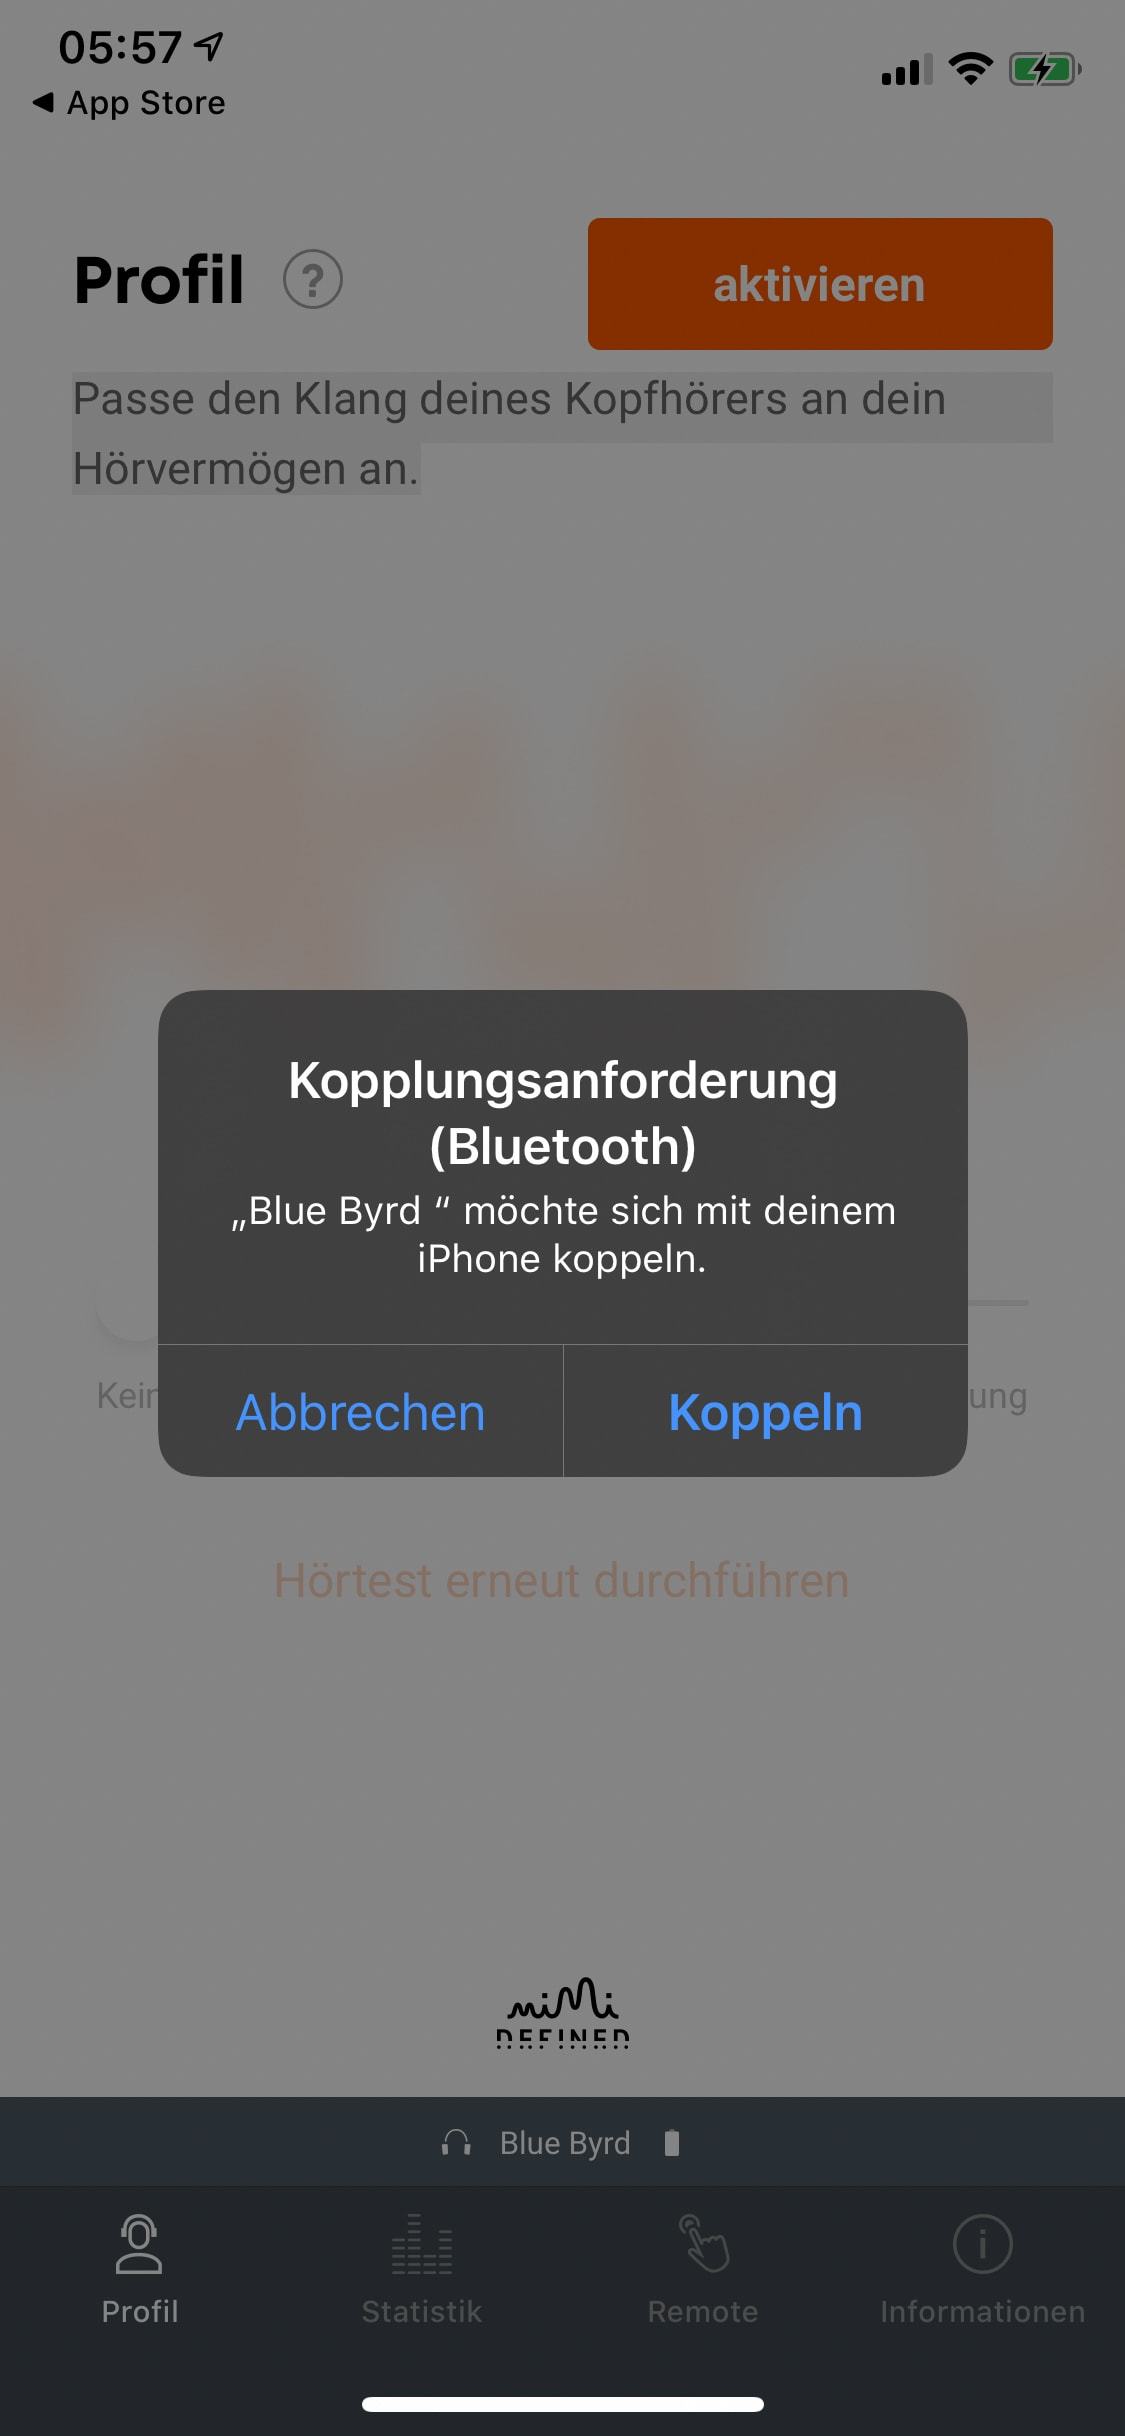 Beyerdynamic Blue Byrd App 3